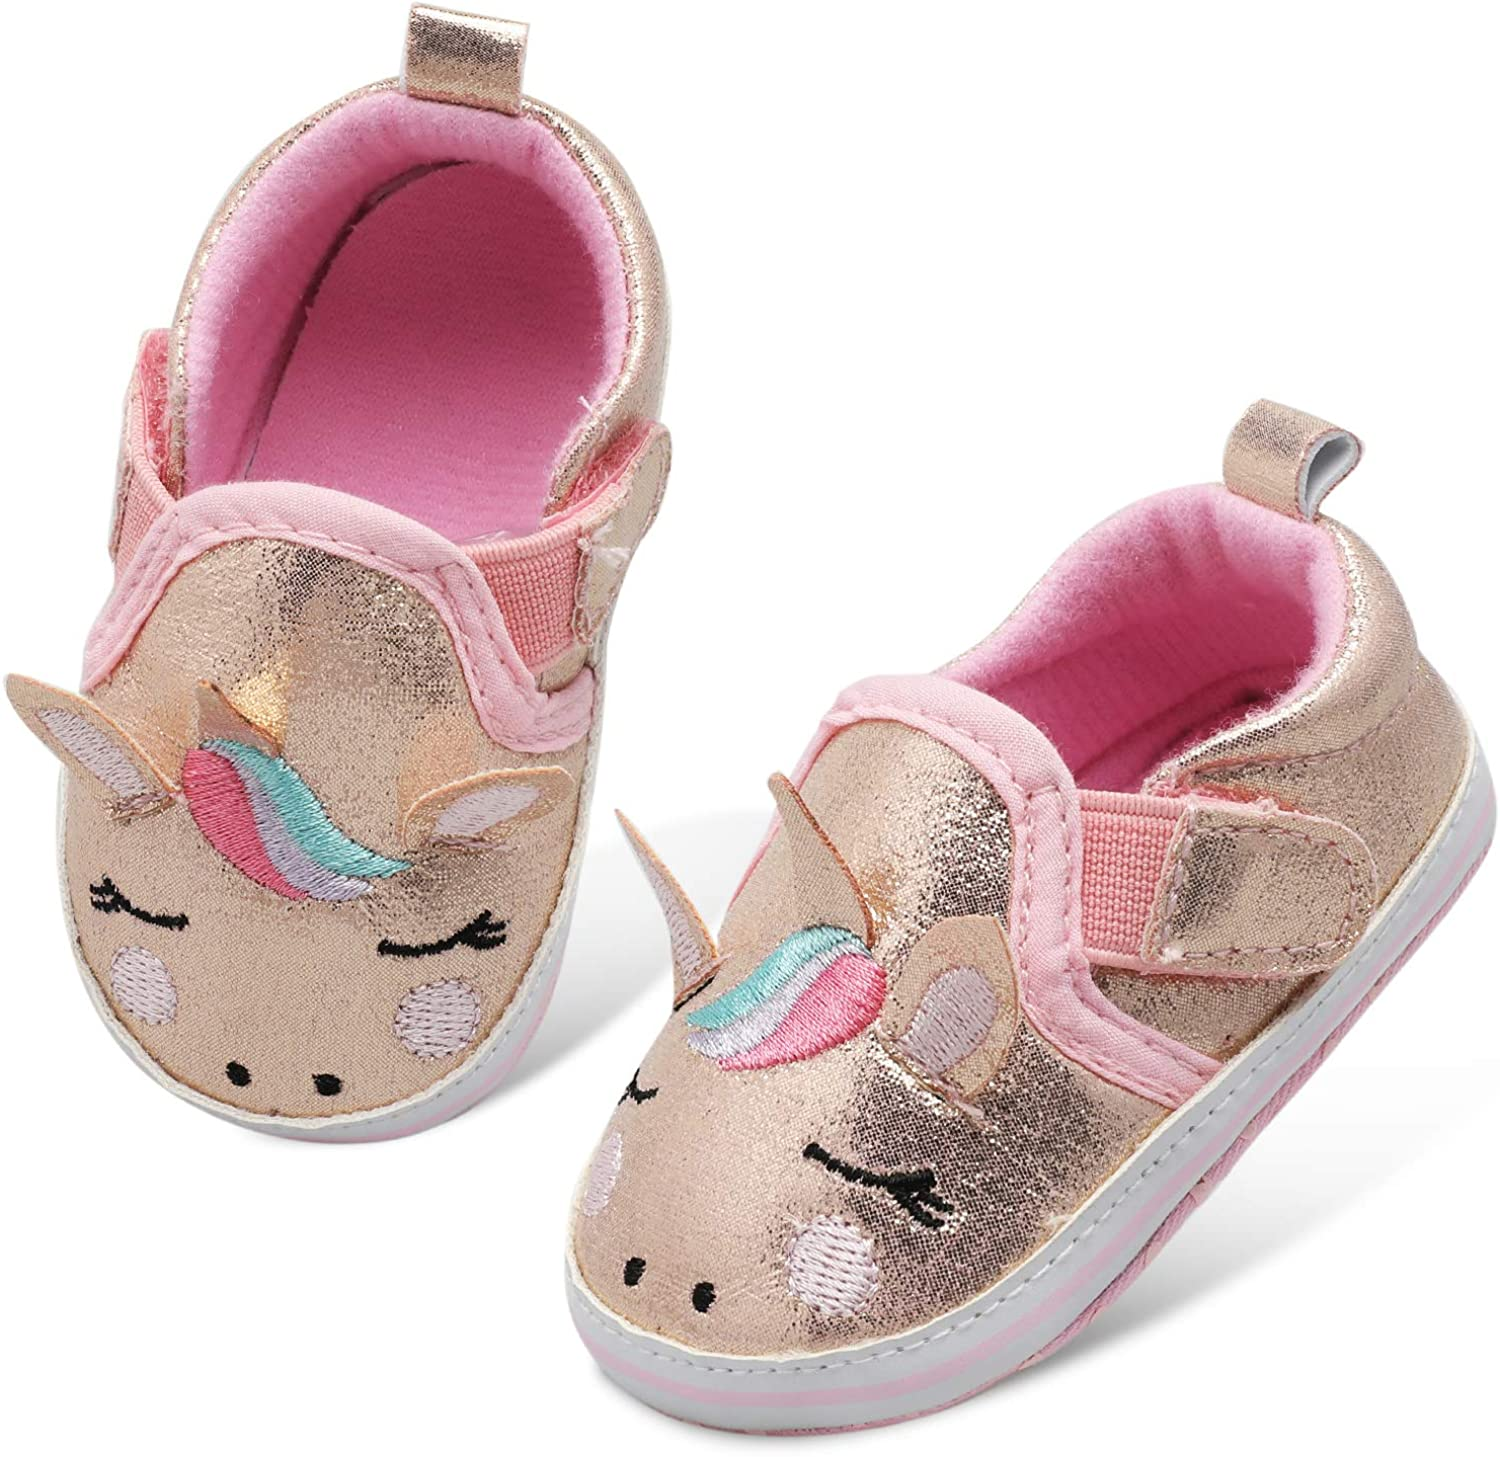 Canvas Sneakers for Baby Boys Girls Cozy Anti-Slip Outdoor First Walkers Shoes